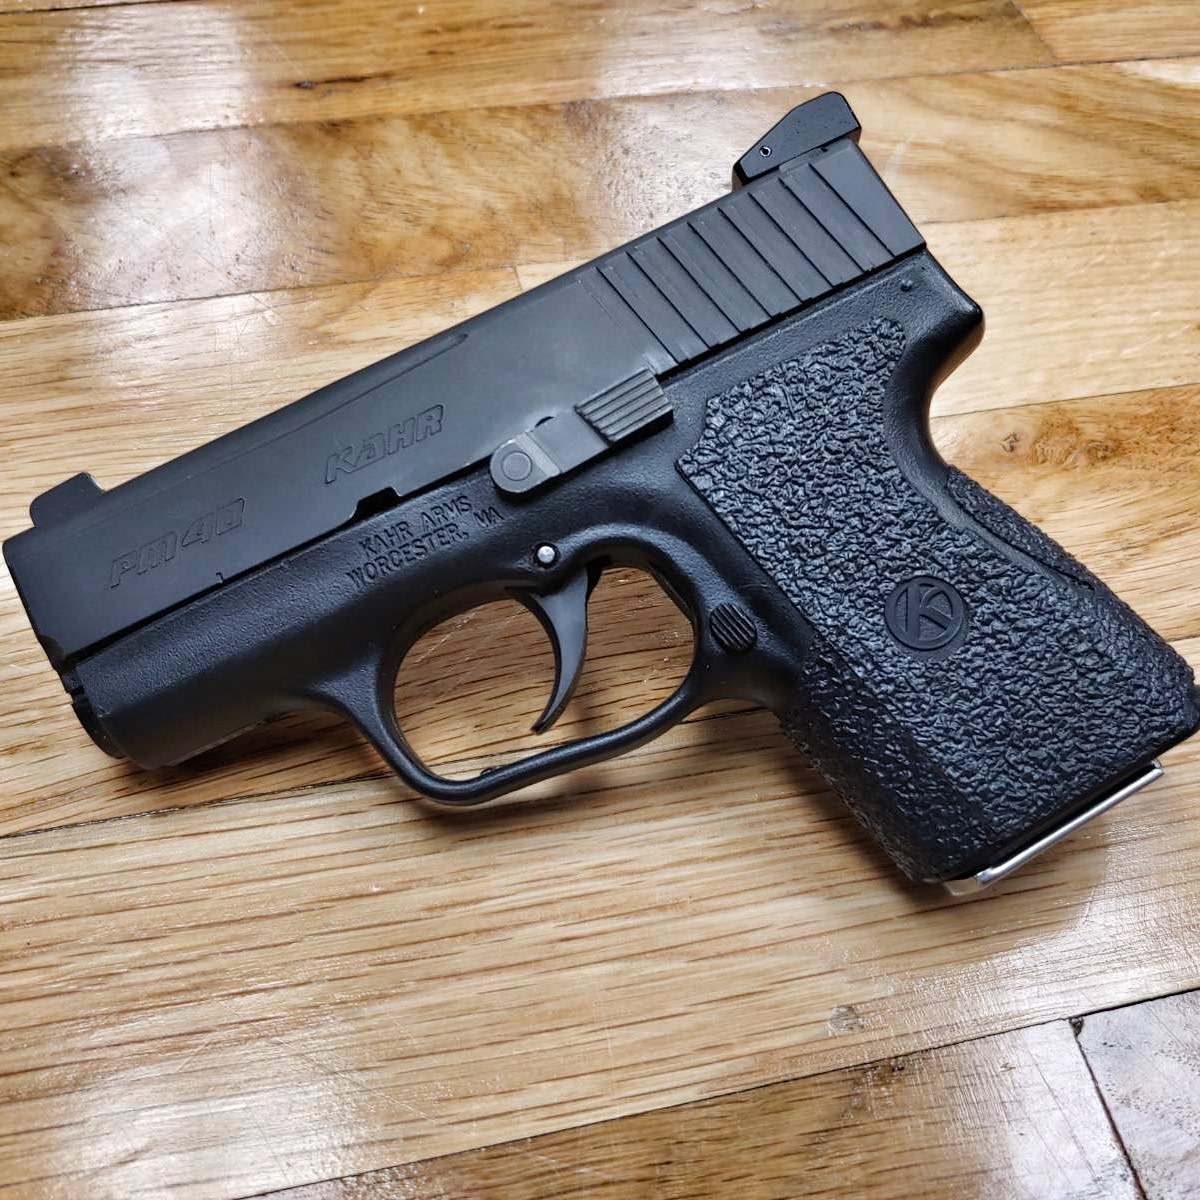 Used KahrPM40, 40 S&W, black, upgraded night sights